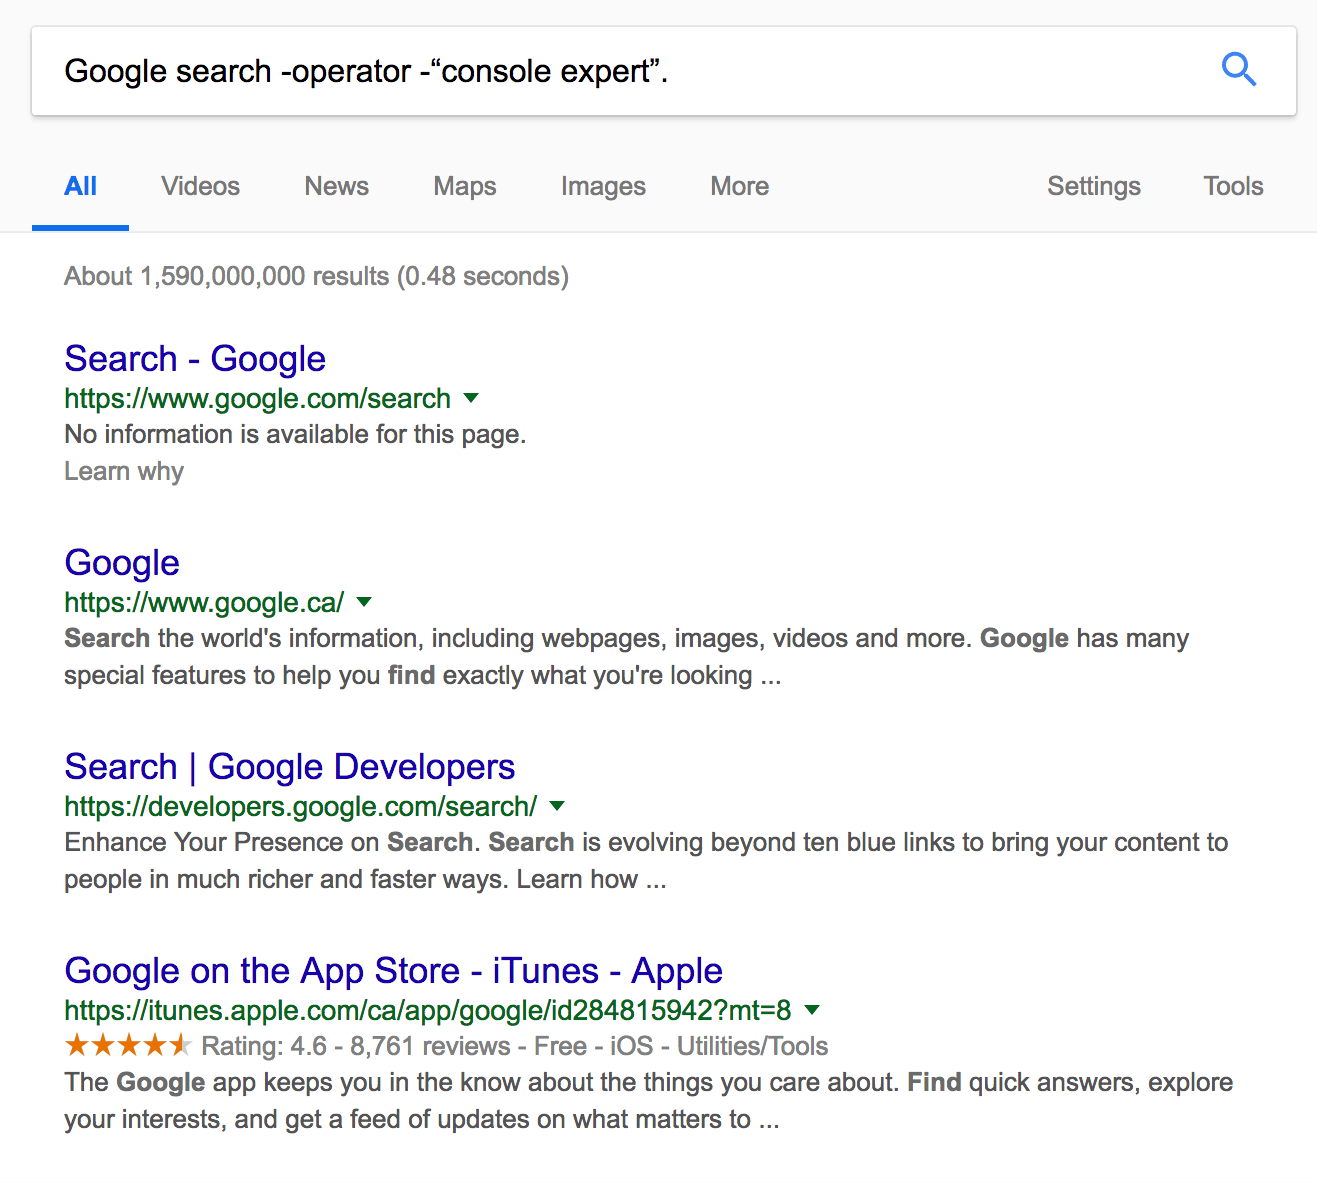 Combined google search operator